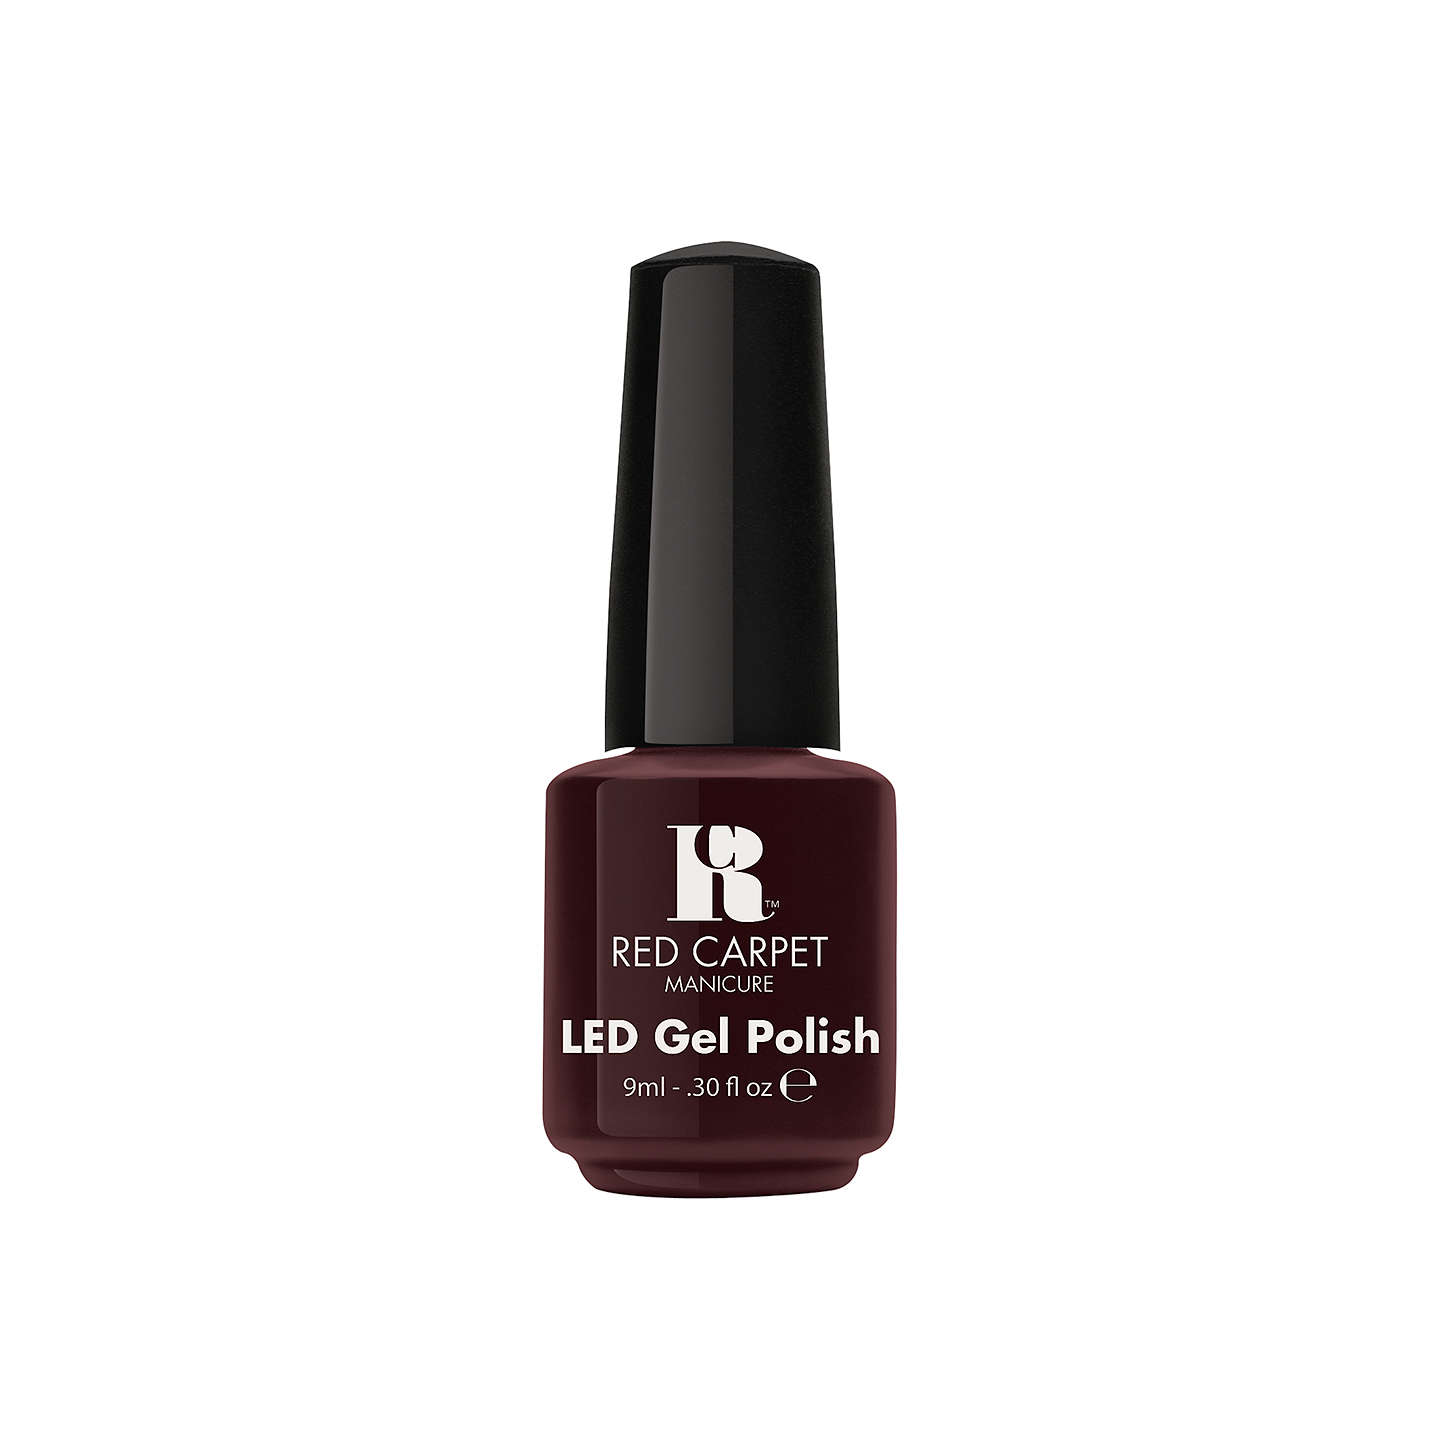 Red Carpet Manicure LED Gel Nail Polish Yellow, Orange